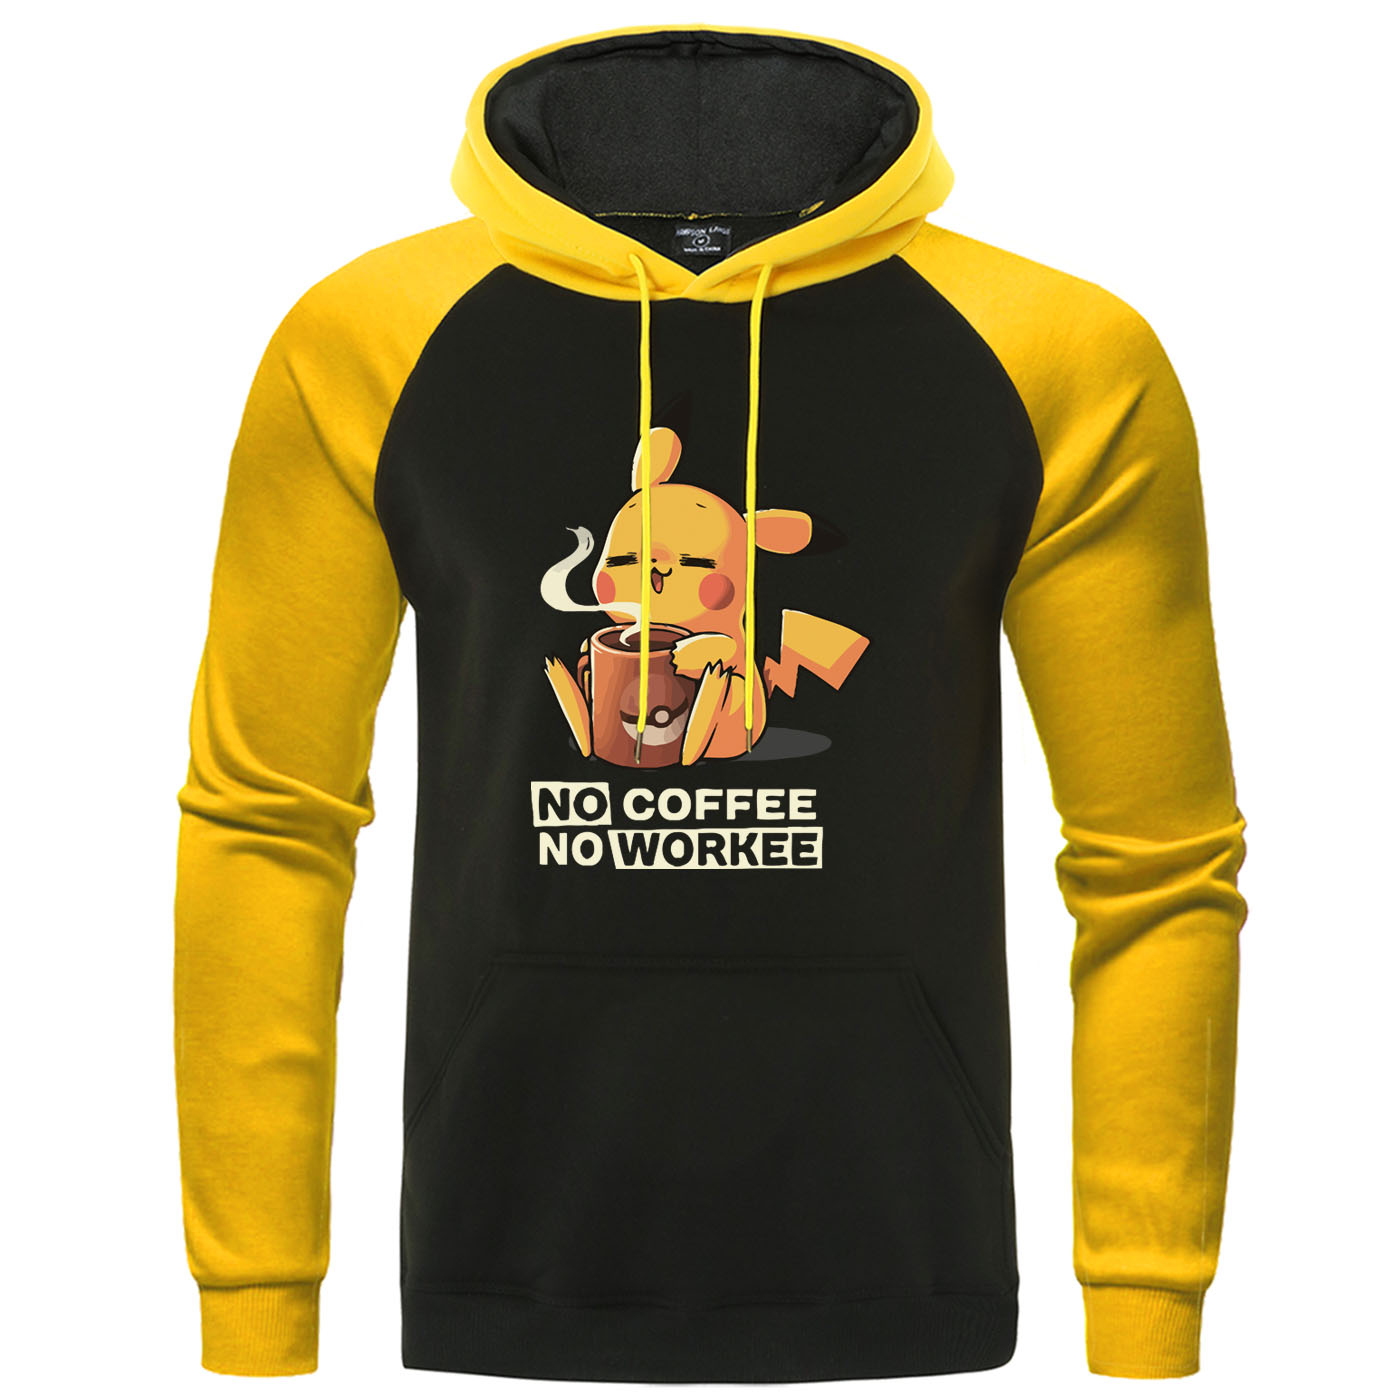 NO COFFEE NO WORKEE Hoodies Pikachu Pokemon Sweatshirt Casual Mens Anime Pullover Funny Raglan Men Hoodie Harajuku Streetwear